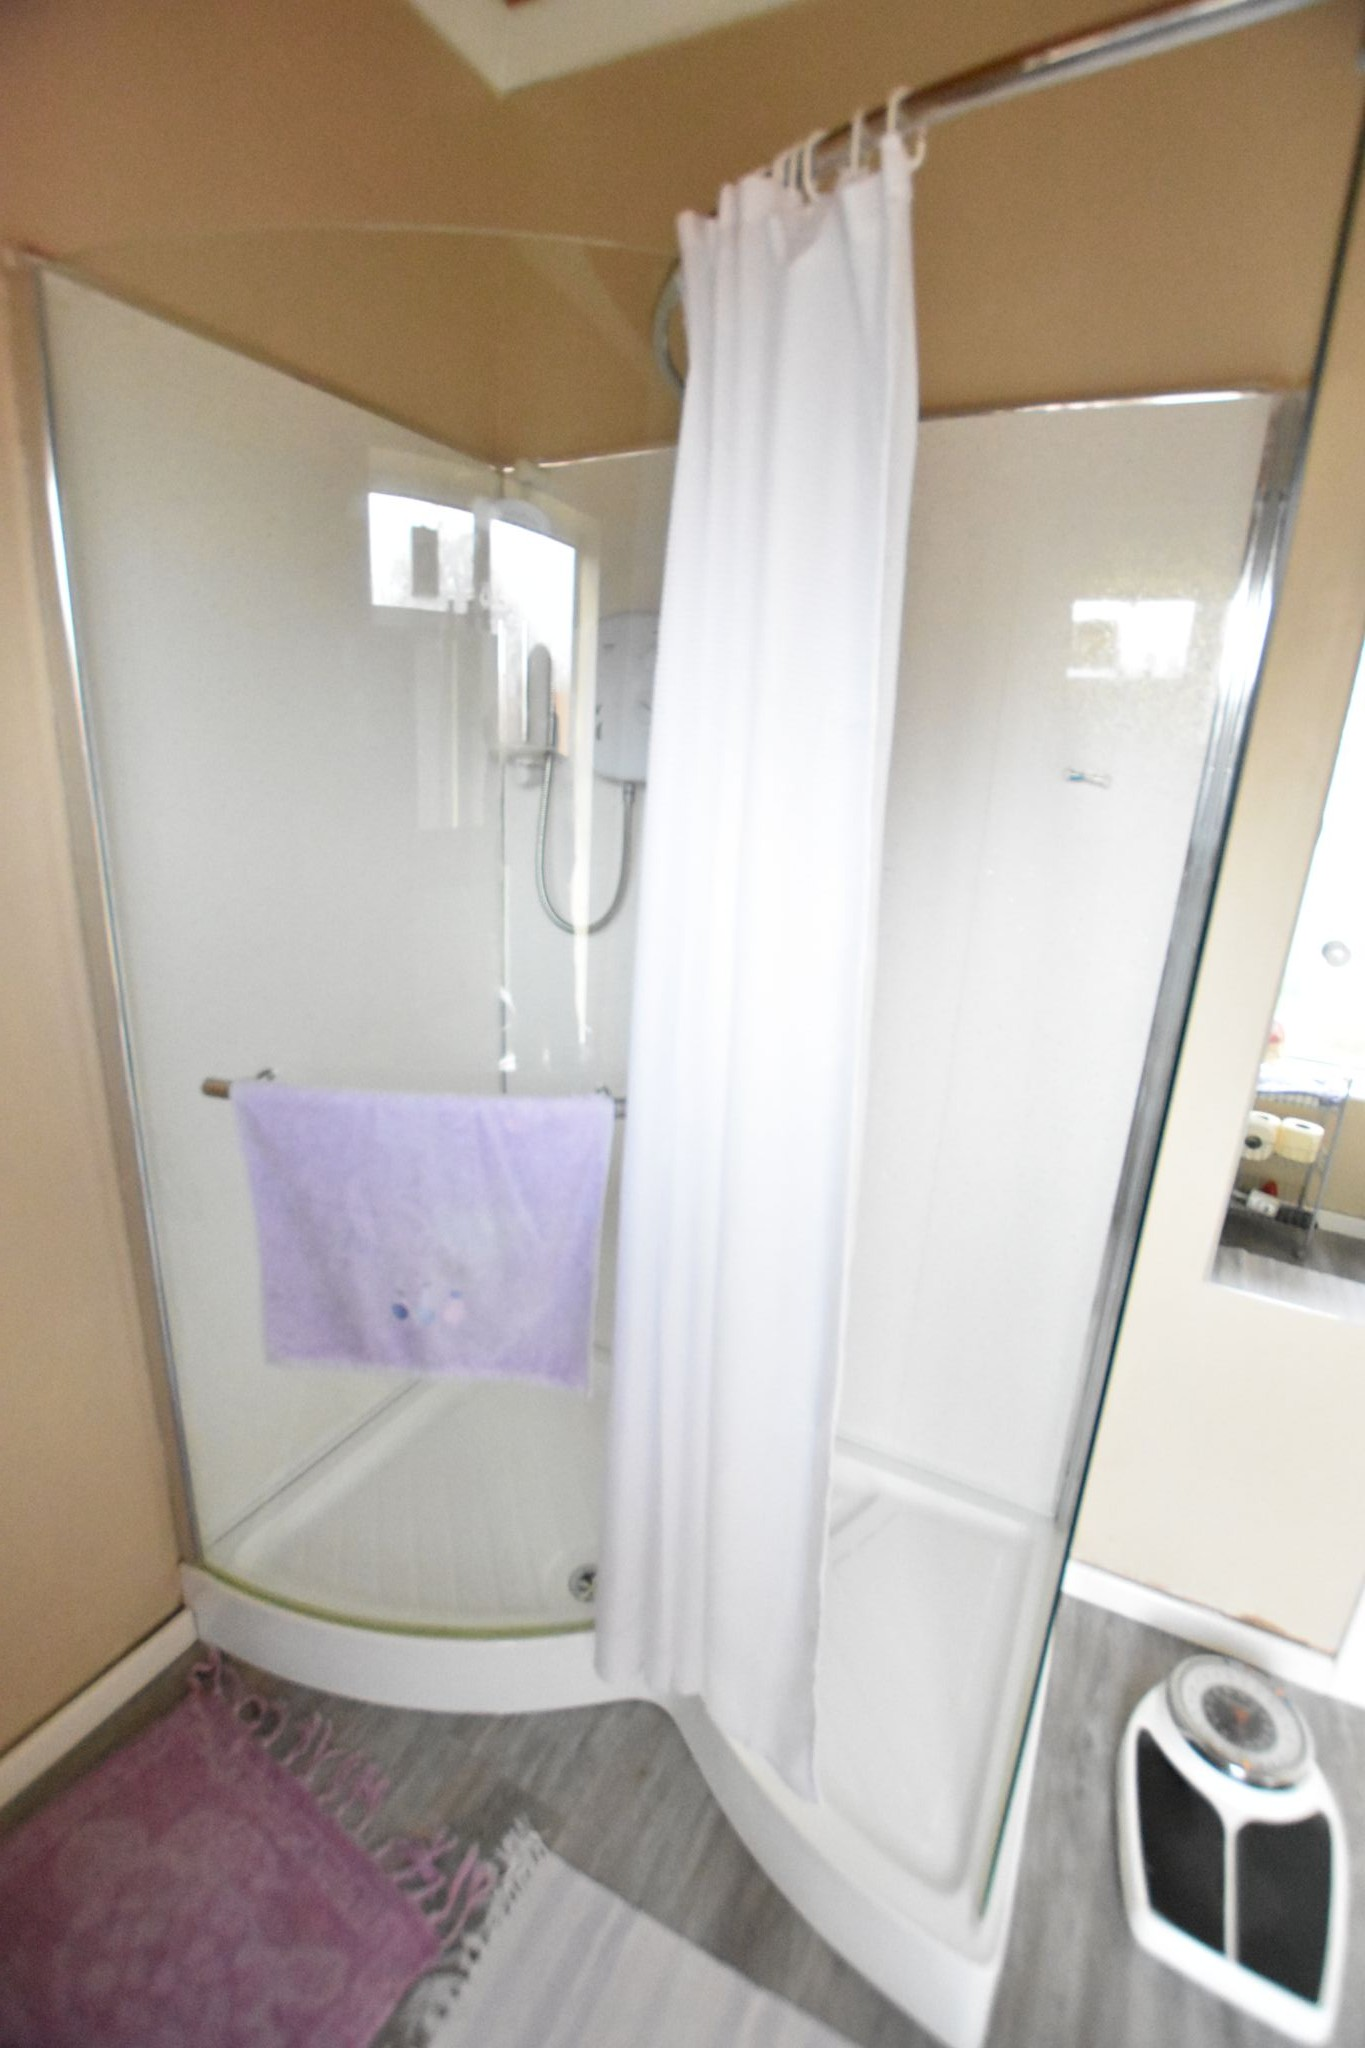 Image 4 of 4 of BATHROOM, on Accommodation Comprising for